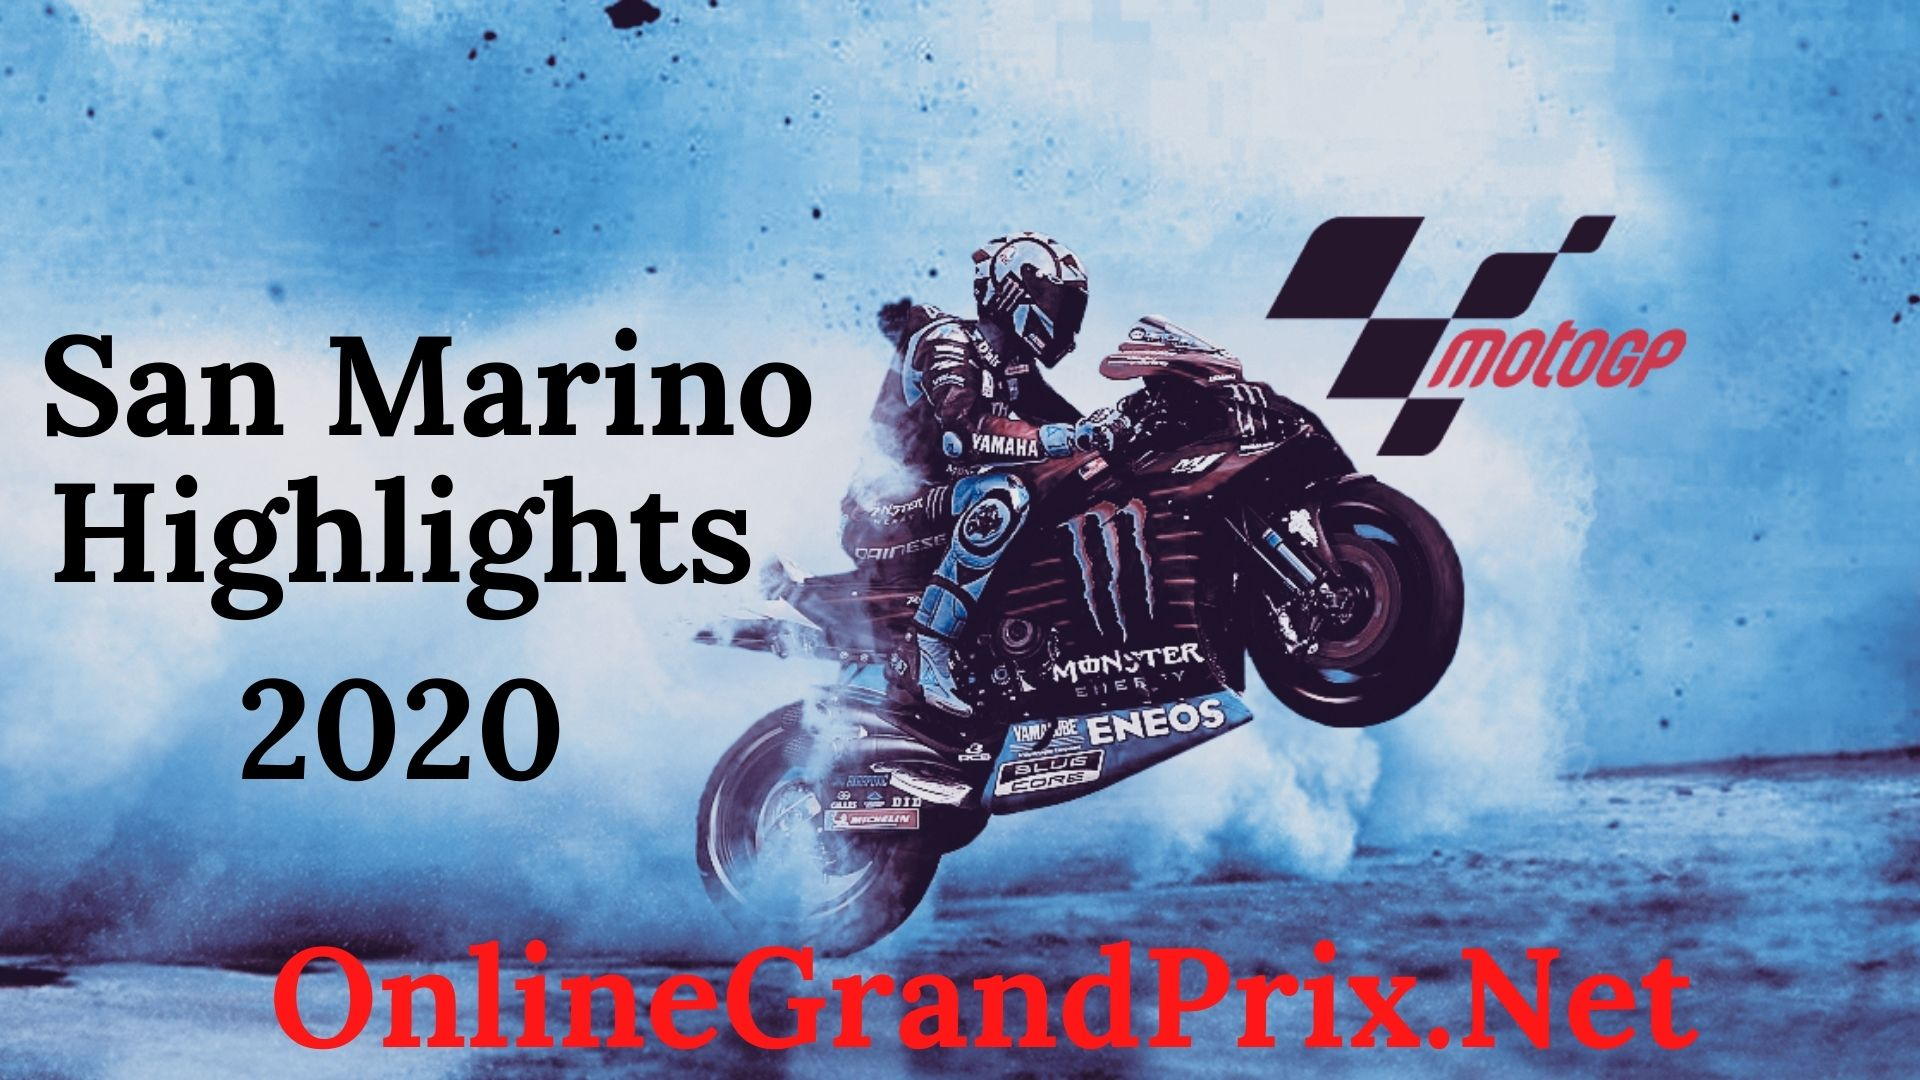 San Marino MotoGP Highlights 2020